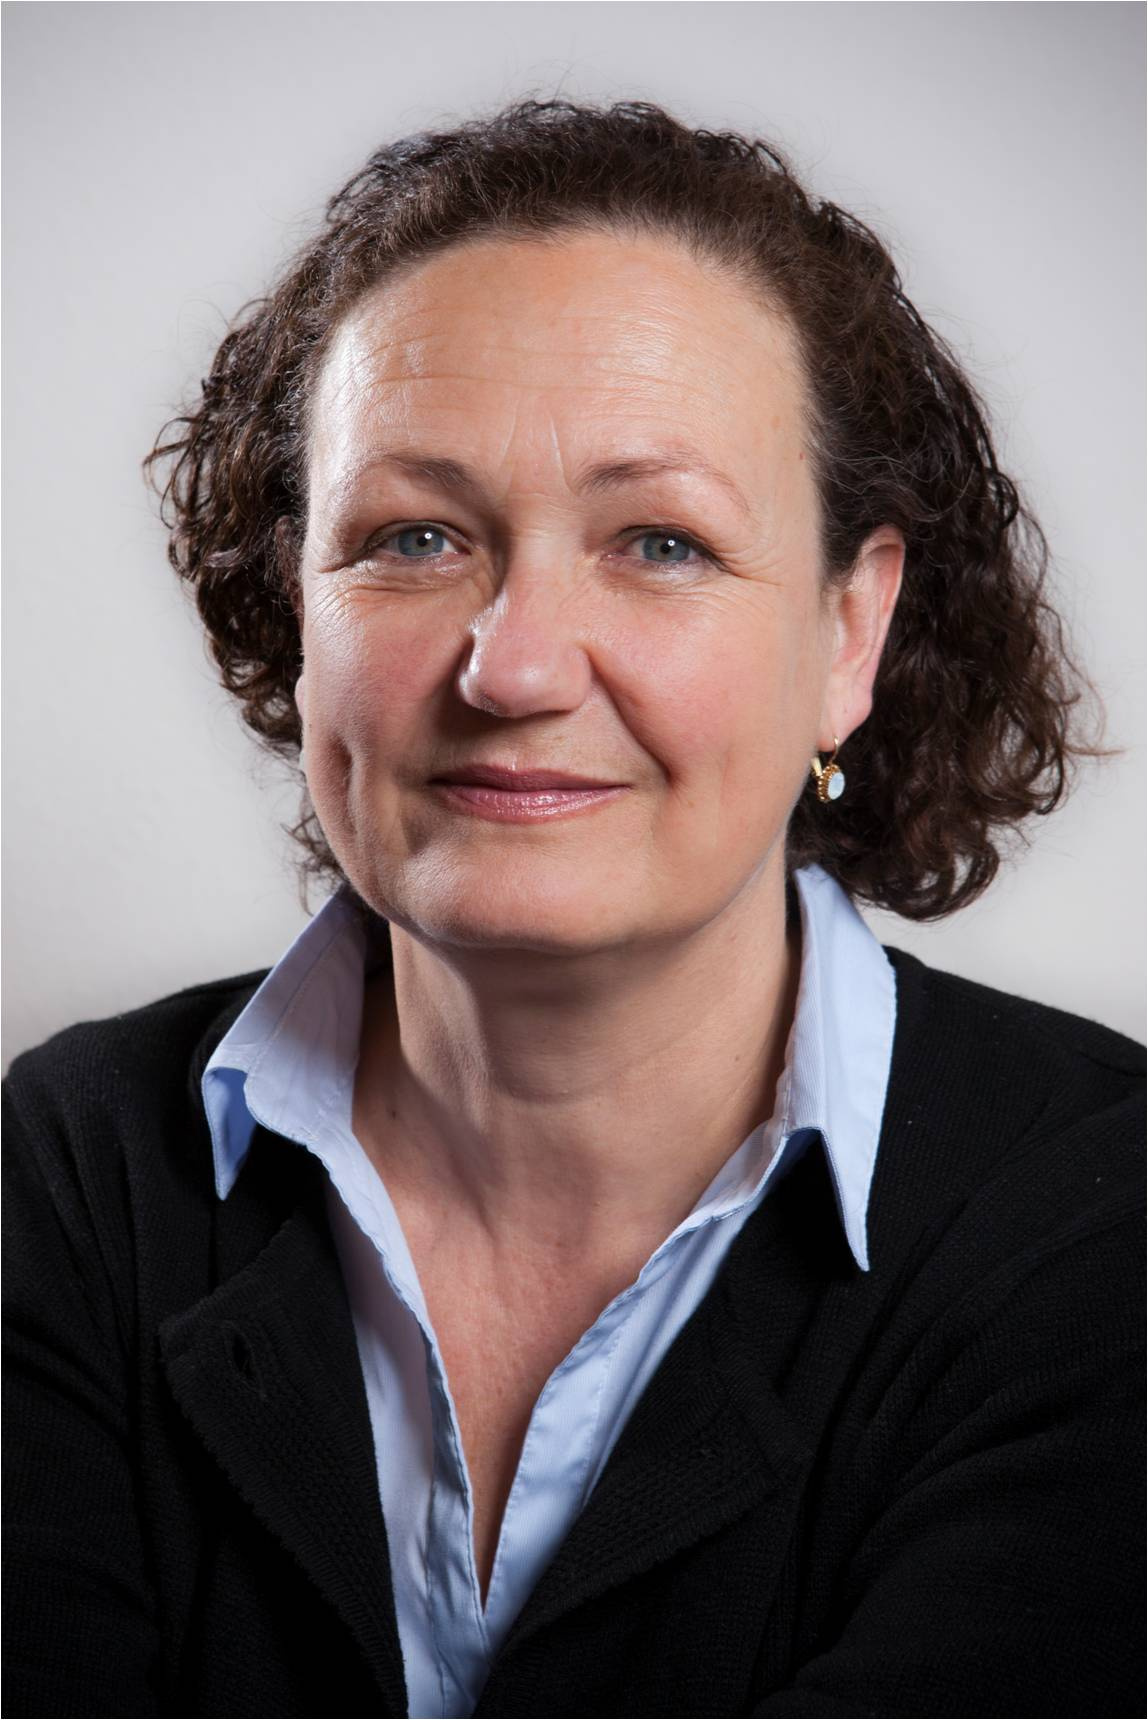 Mirjam Münch : Ph.D.